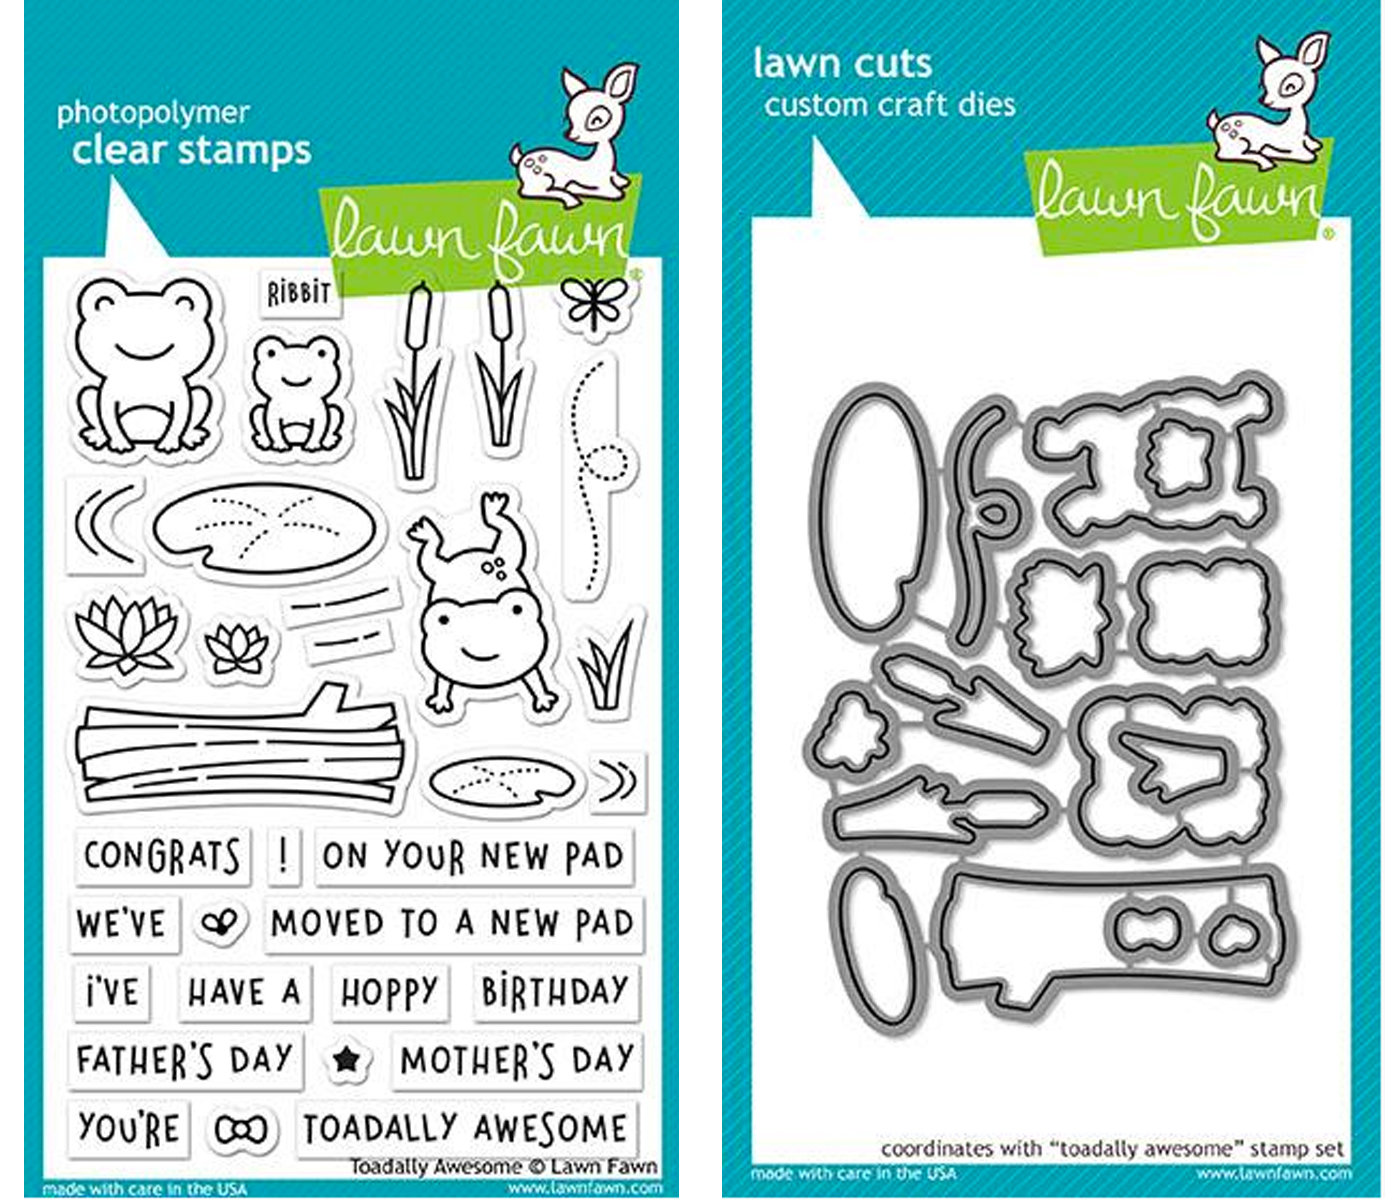 LAWN FAWN TOADALLY AWESOME STAMP AND DIE SET